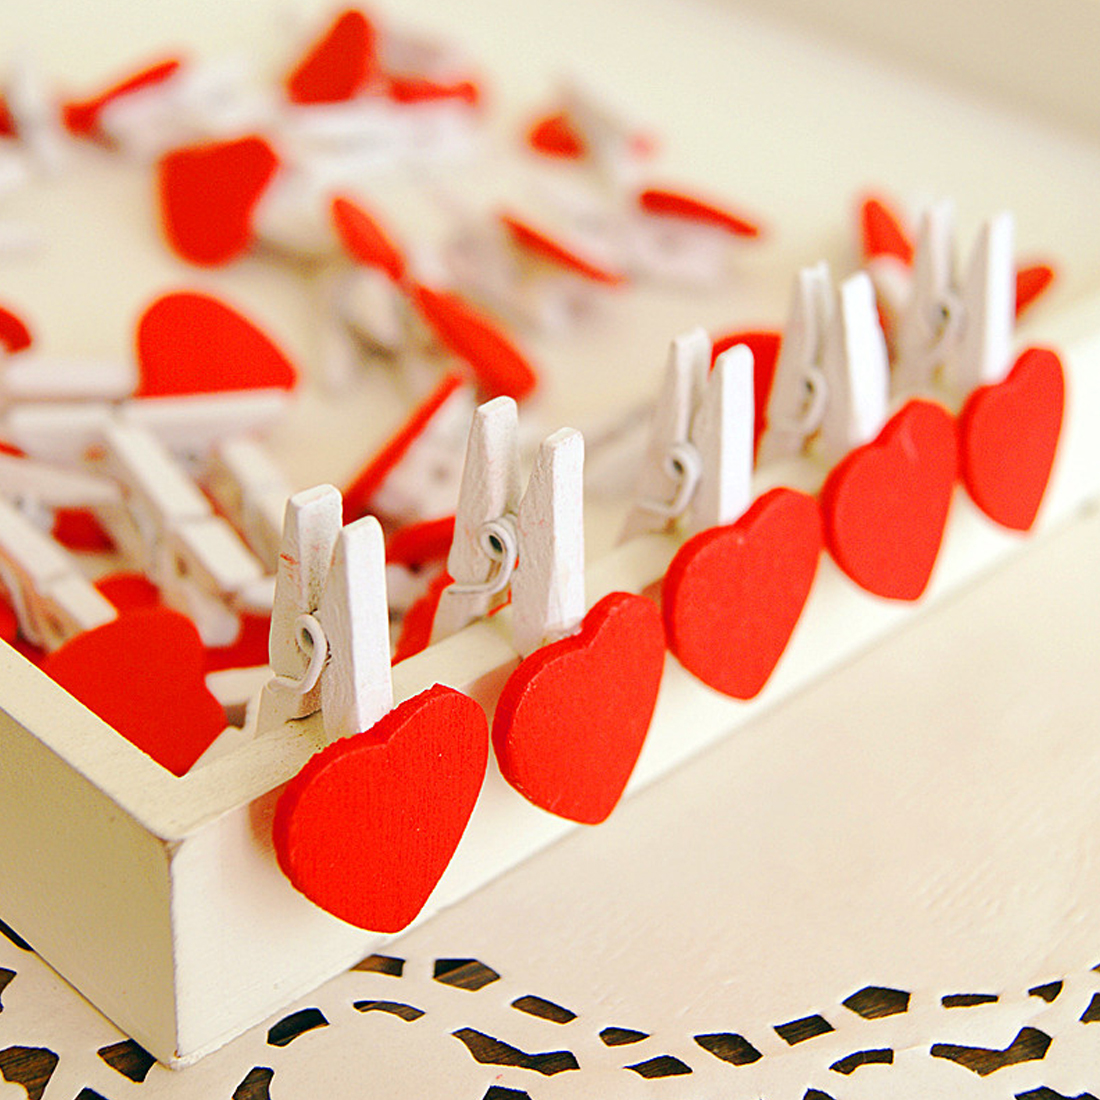 FangNymph 10Pcs/Pack Mini Love Heart  Wooden Clothes Photo Paper Peg Pin Clothes Pin Craft Postcard Gift Clips  Decoration RED